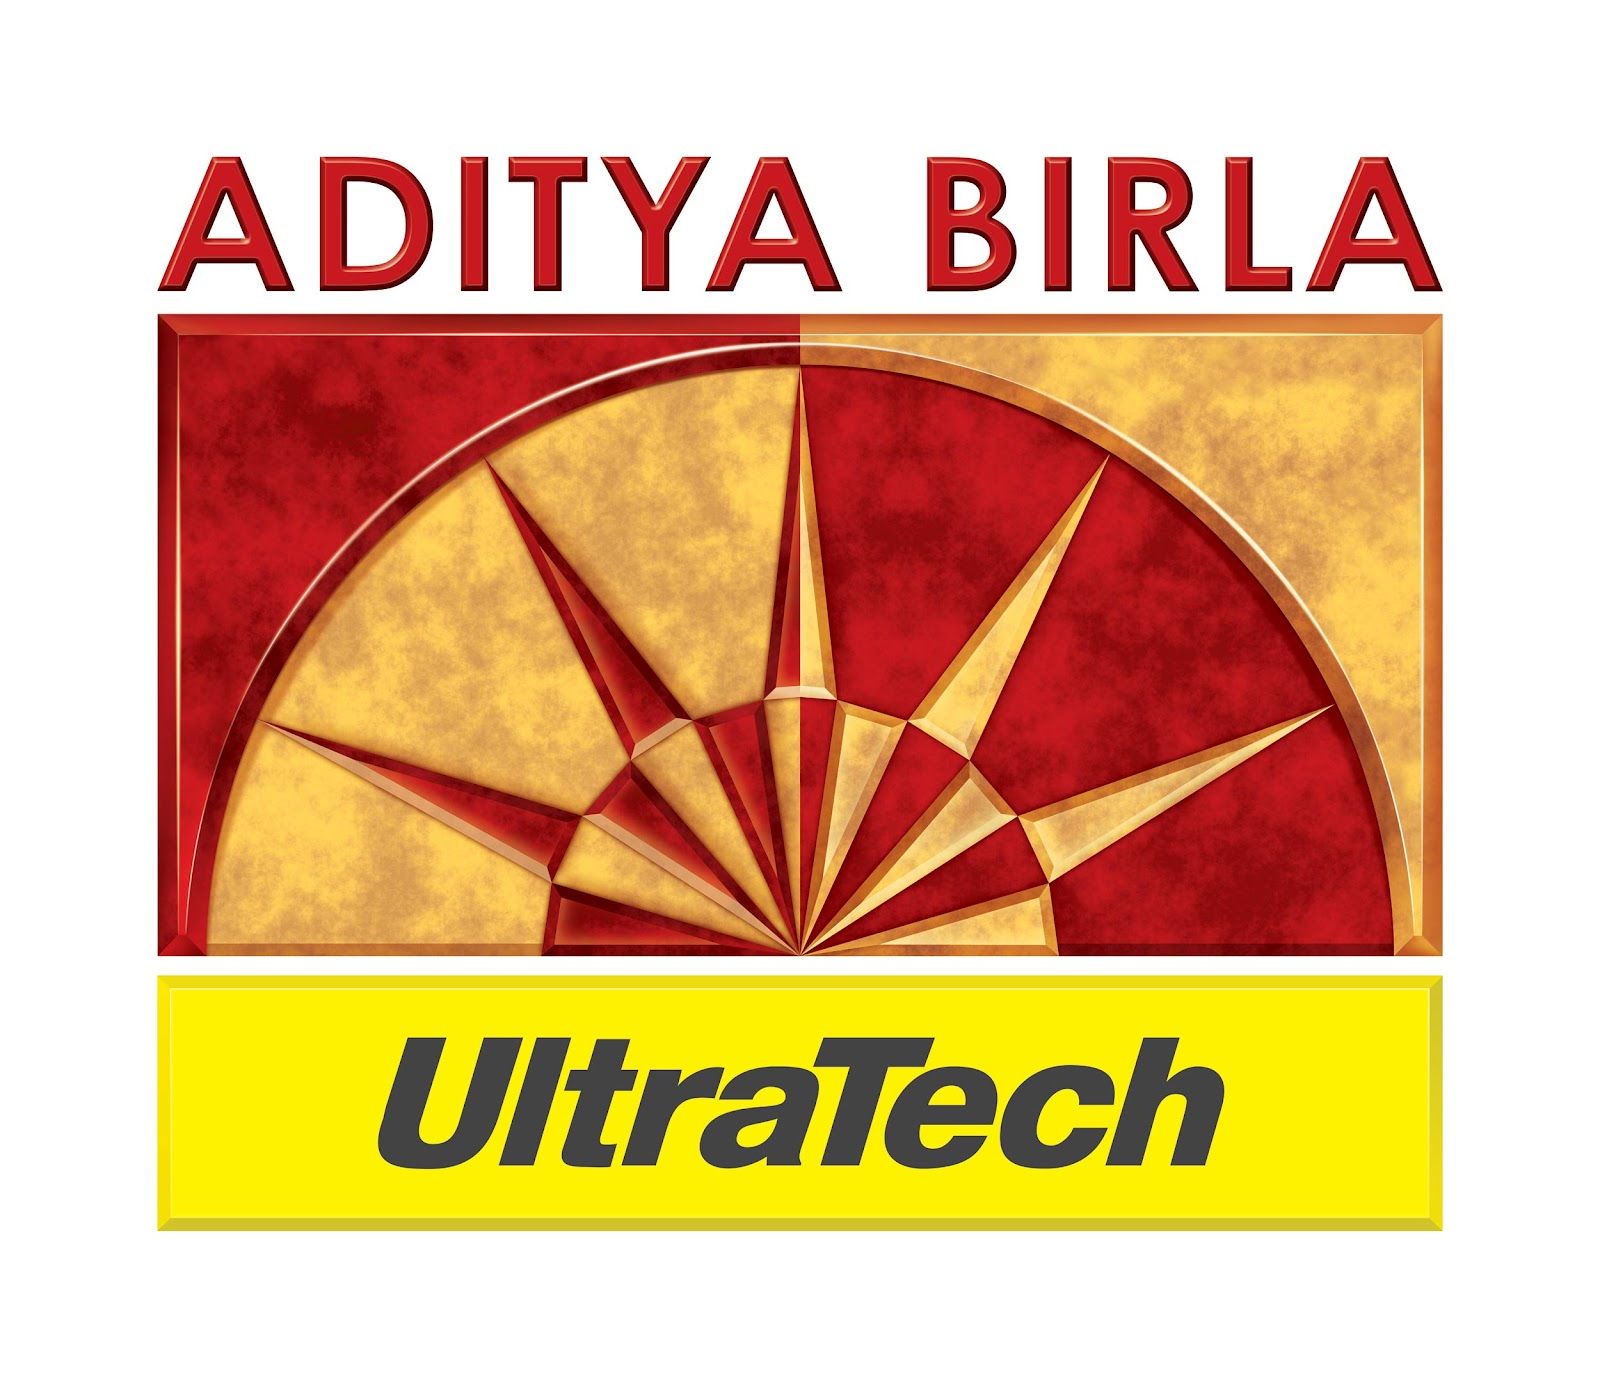 history of aditya birla group By the birla group reference is made to one of the foremost business houses in india headed by the birla family for generations - history of birla group introduction.